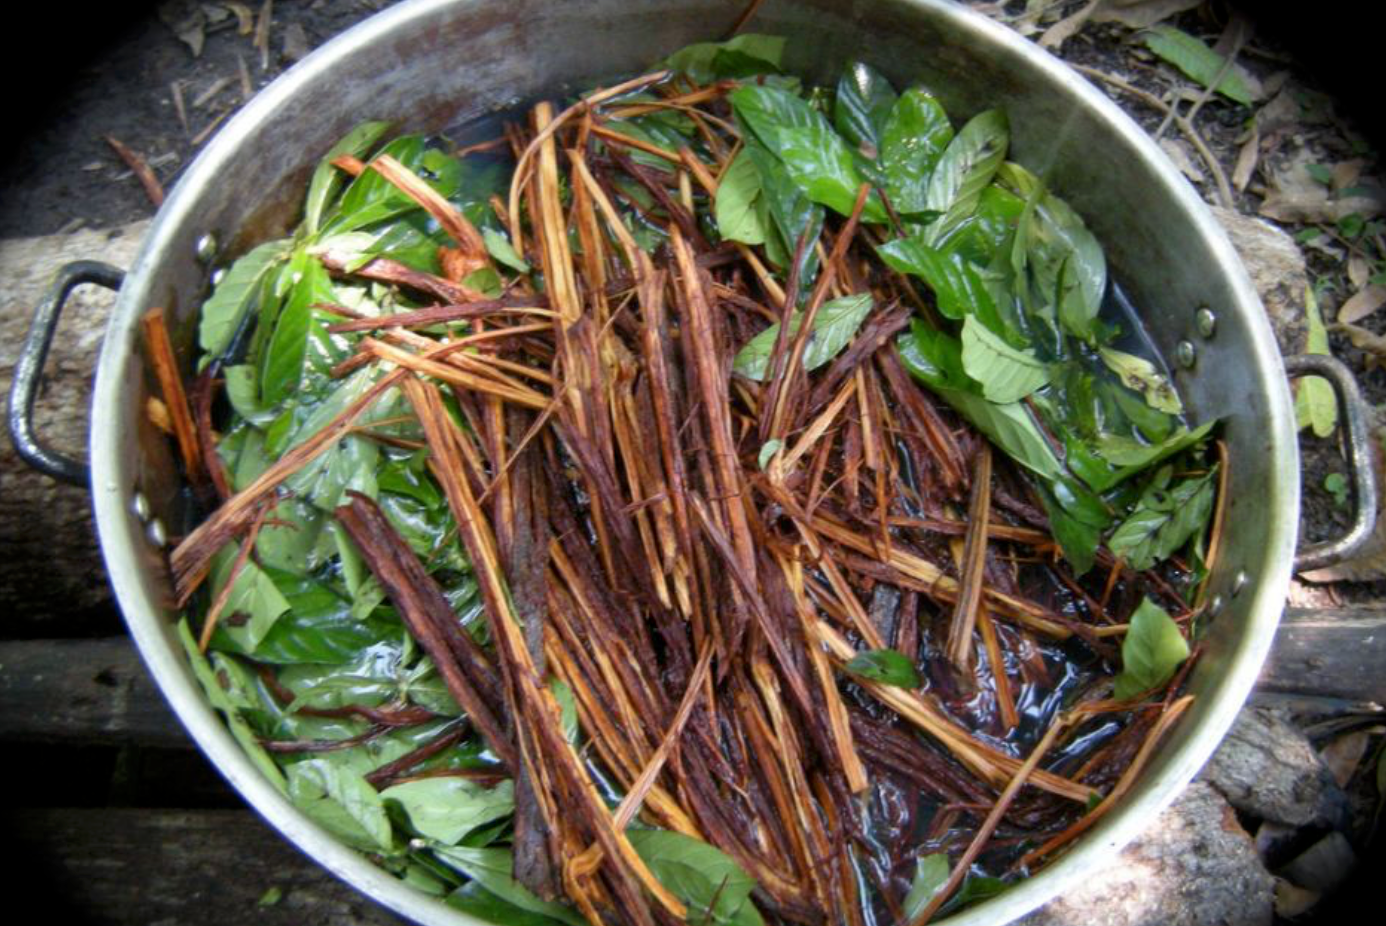 Ayahuasca. Photo Credit: Costa Rican News